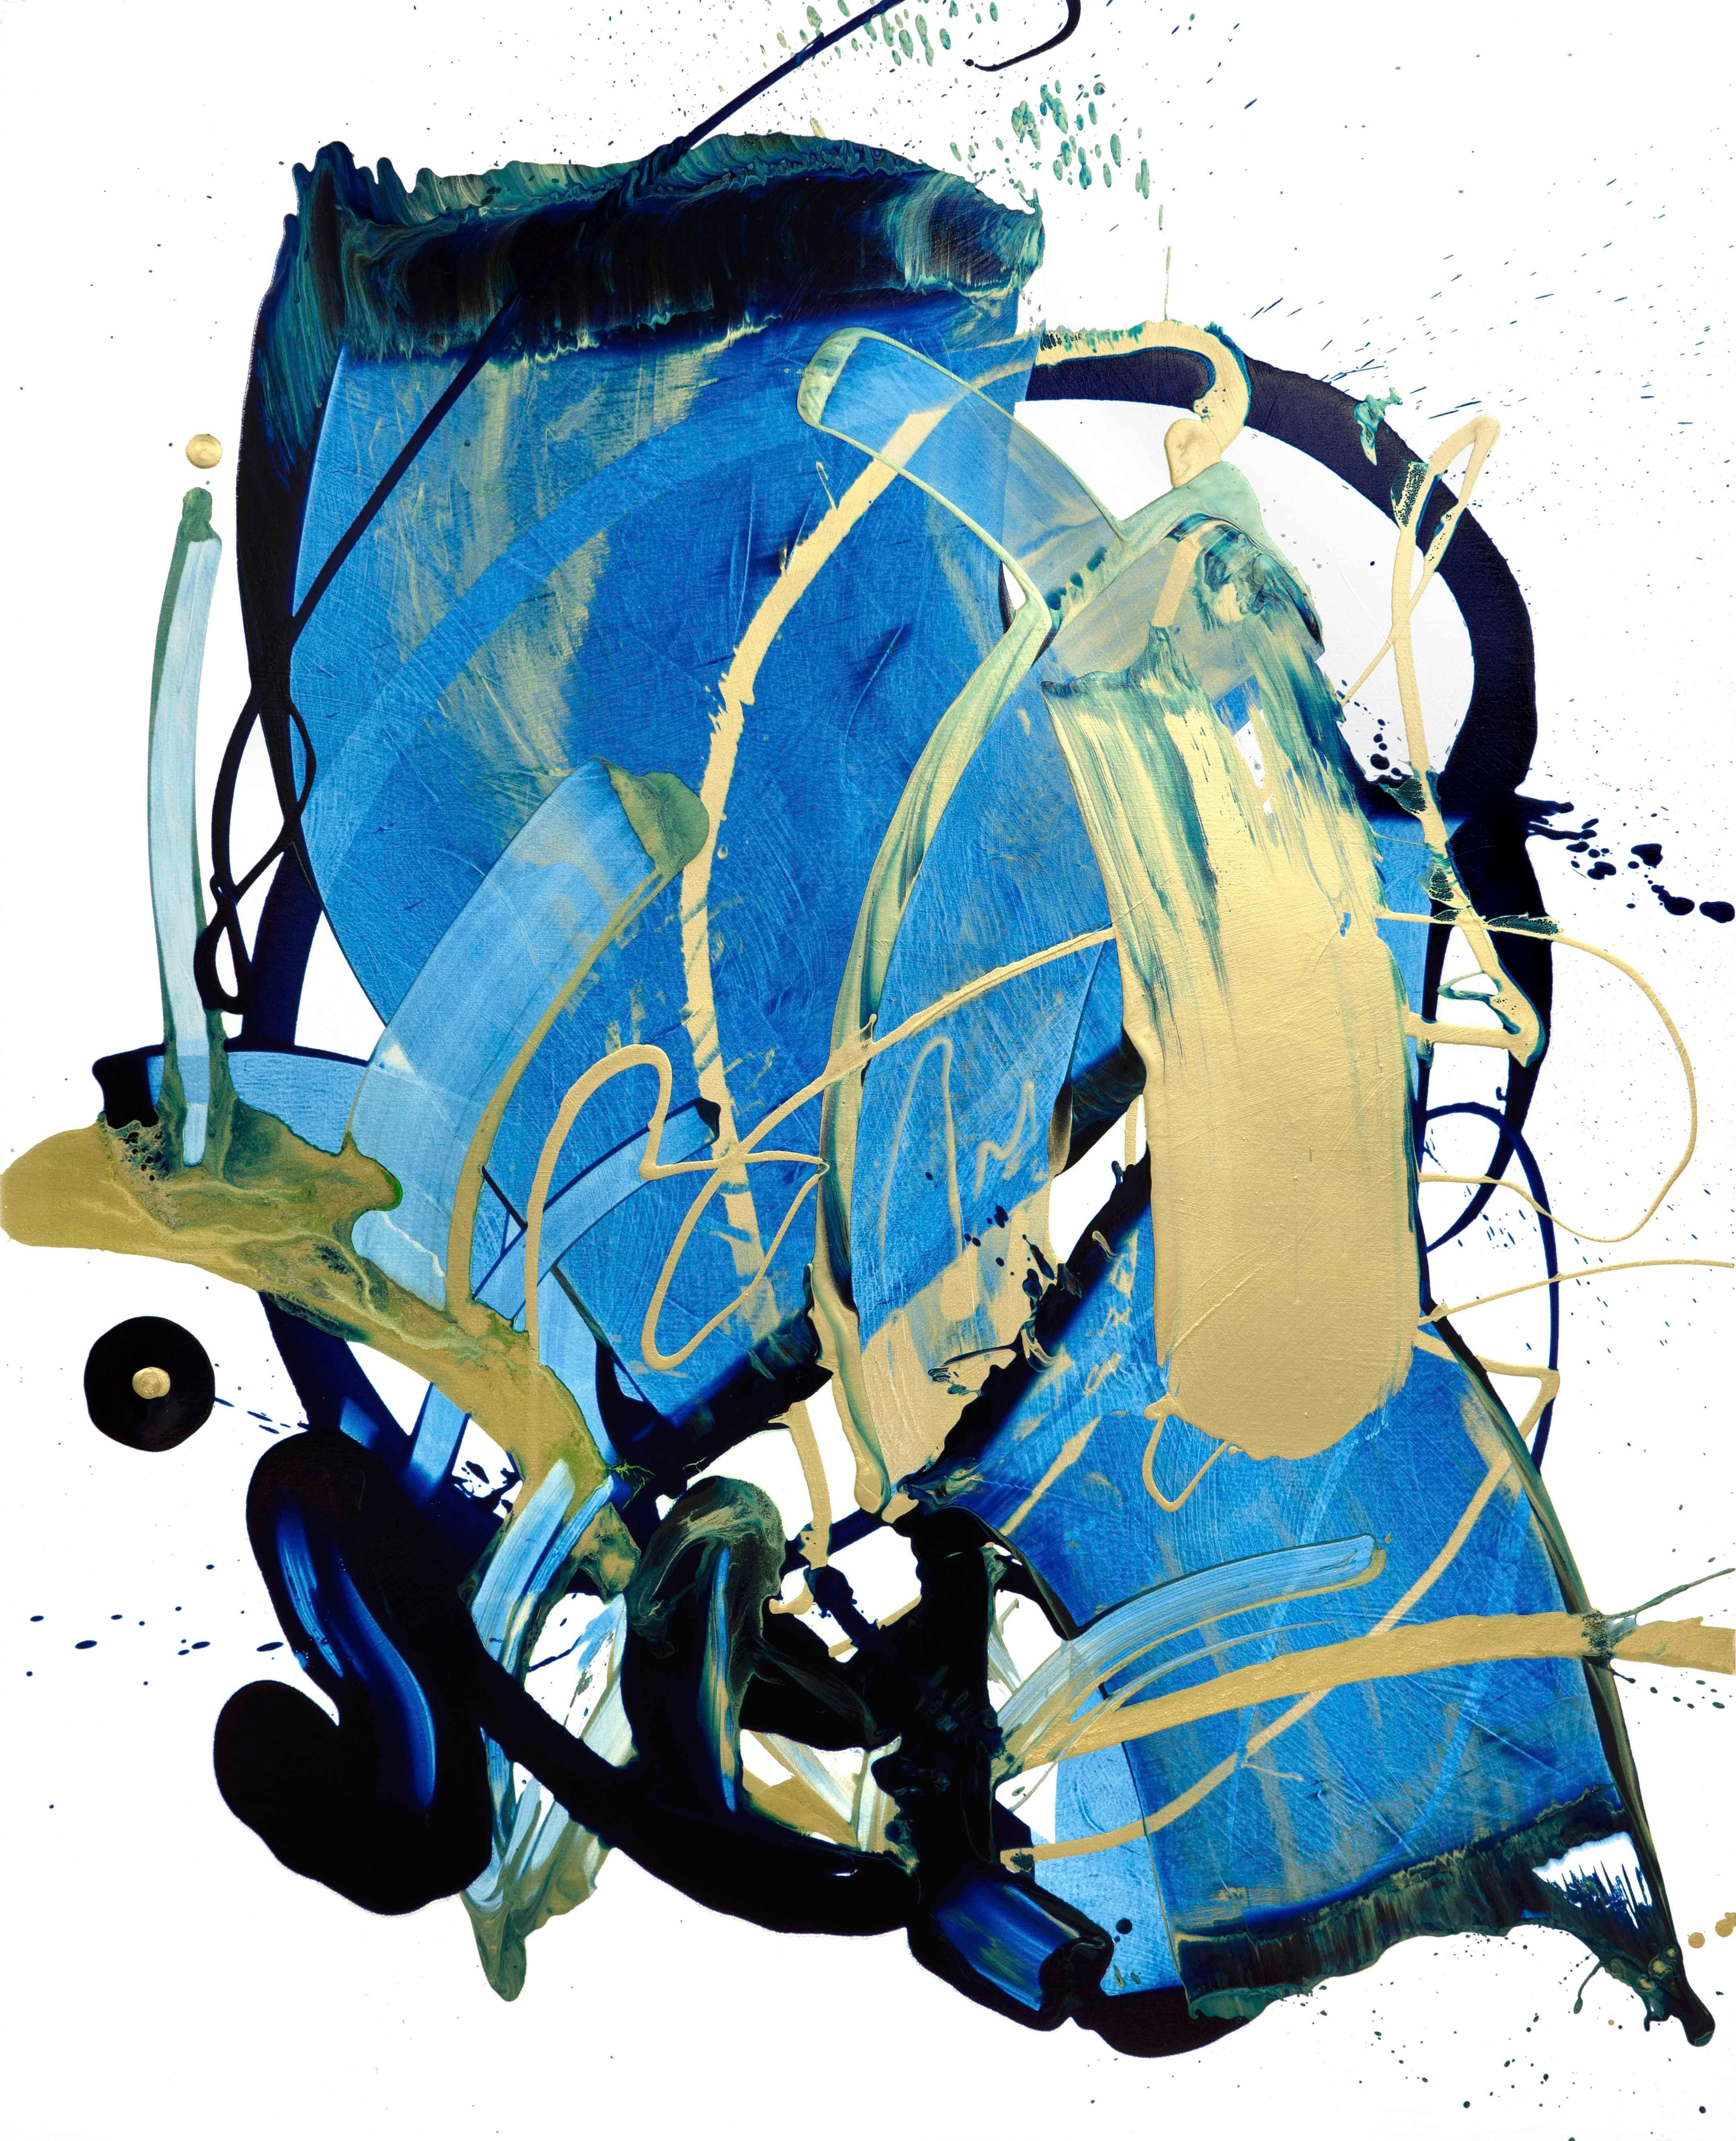 The World & I 24, Contemporary Abstract Art Oil Painting Canvas Blue Gold Black